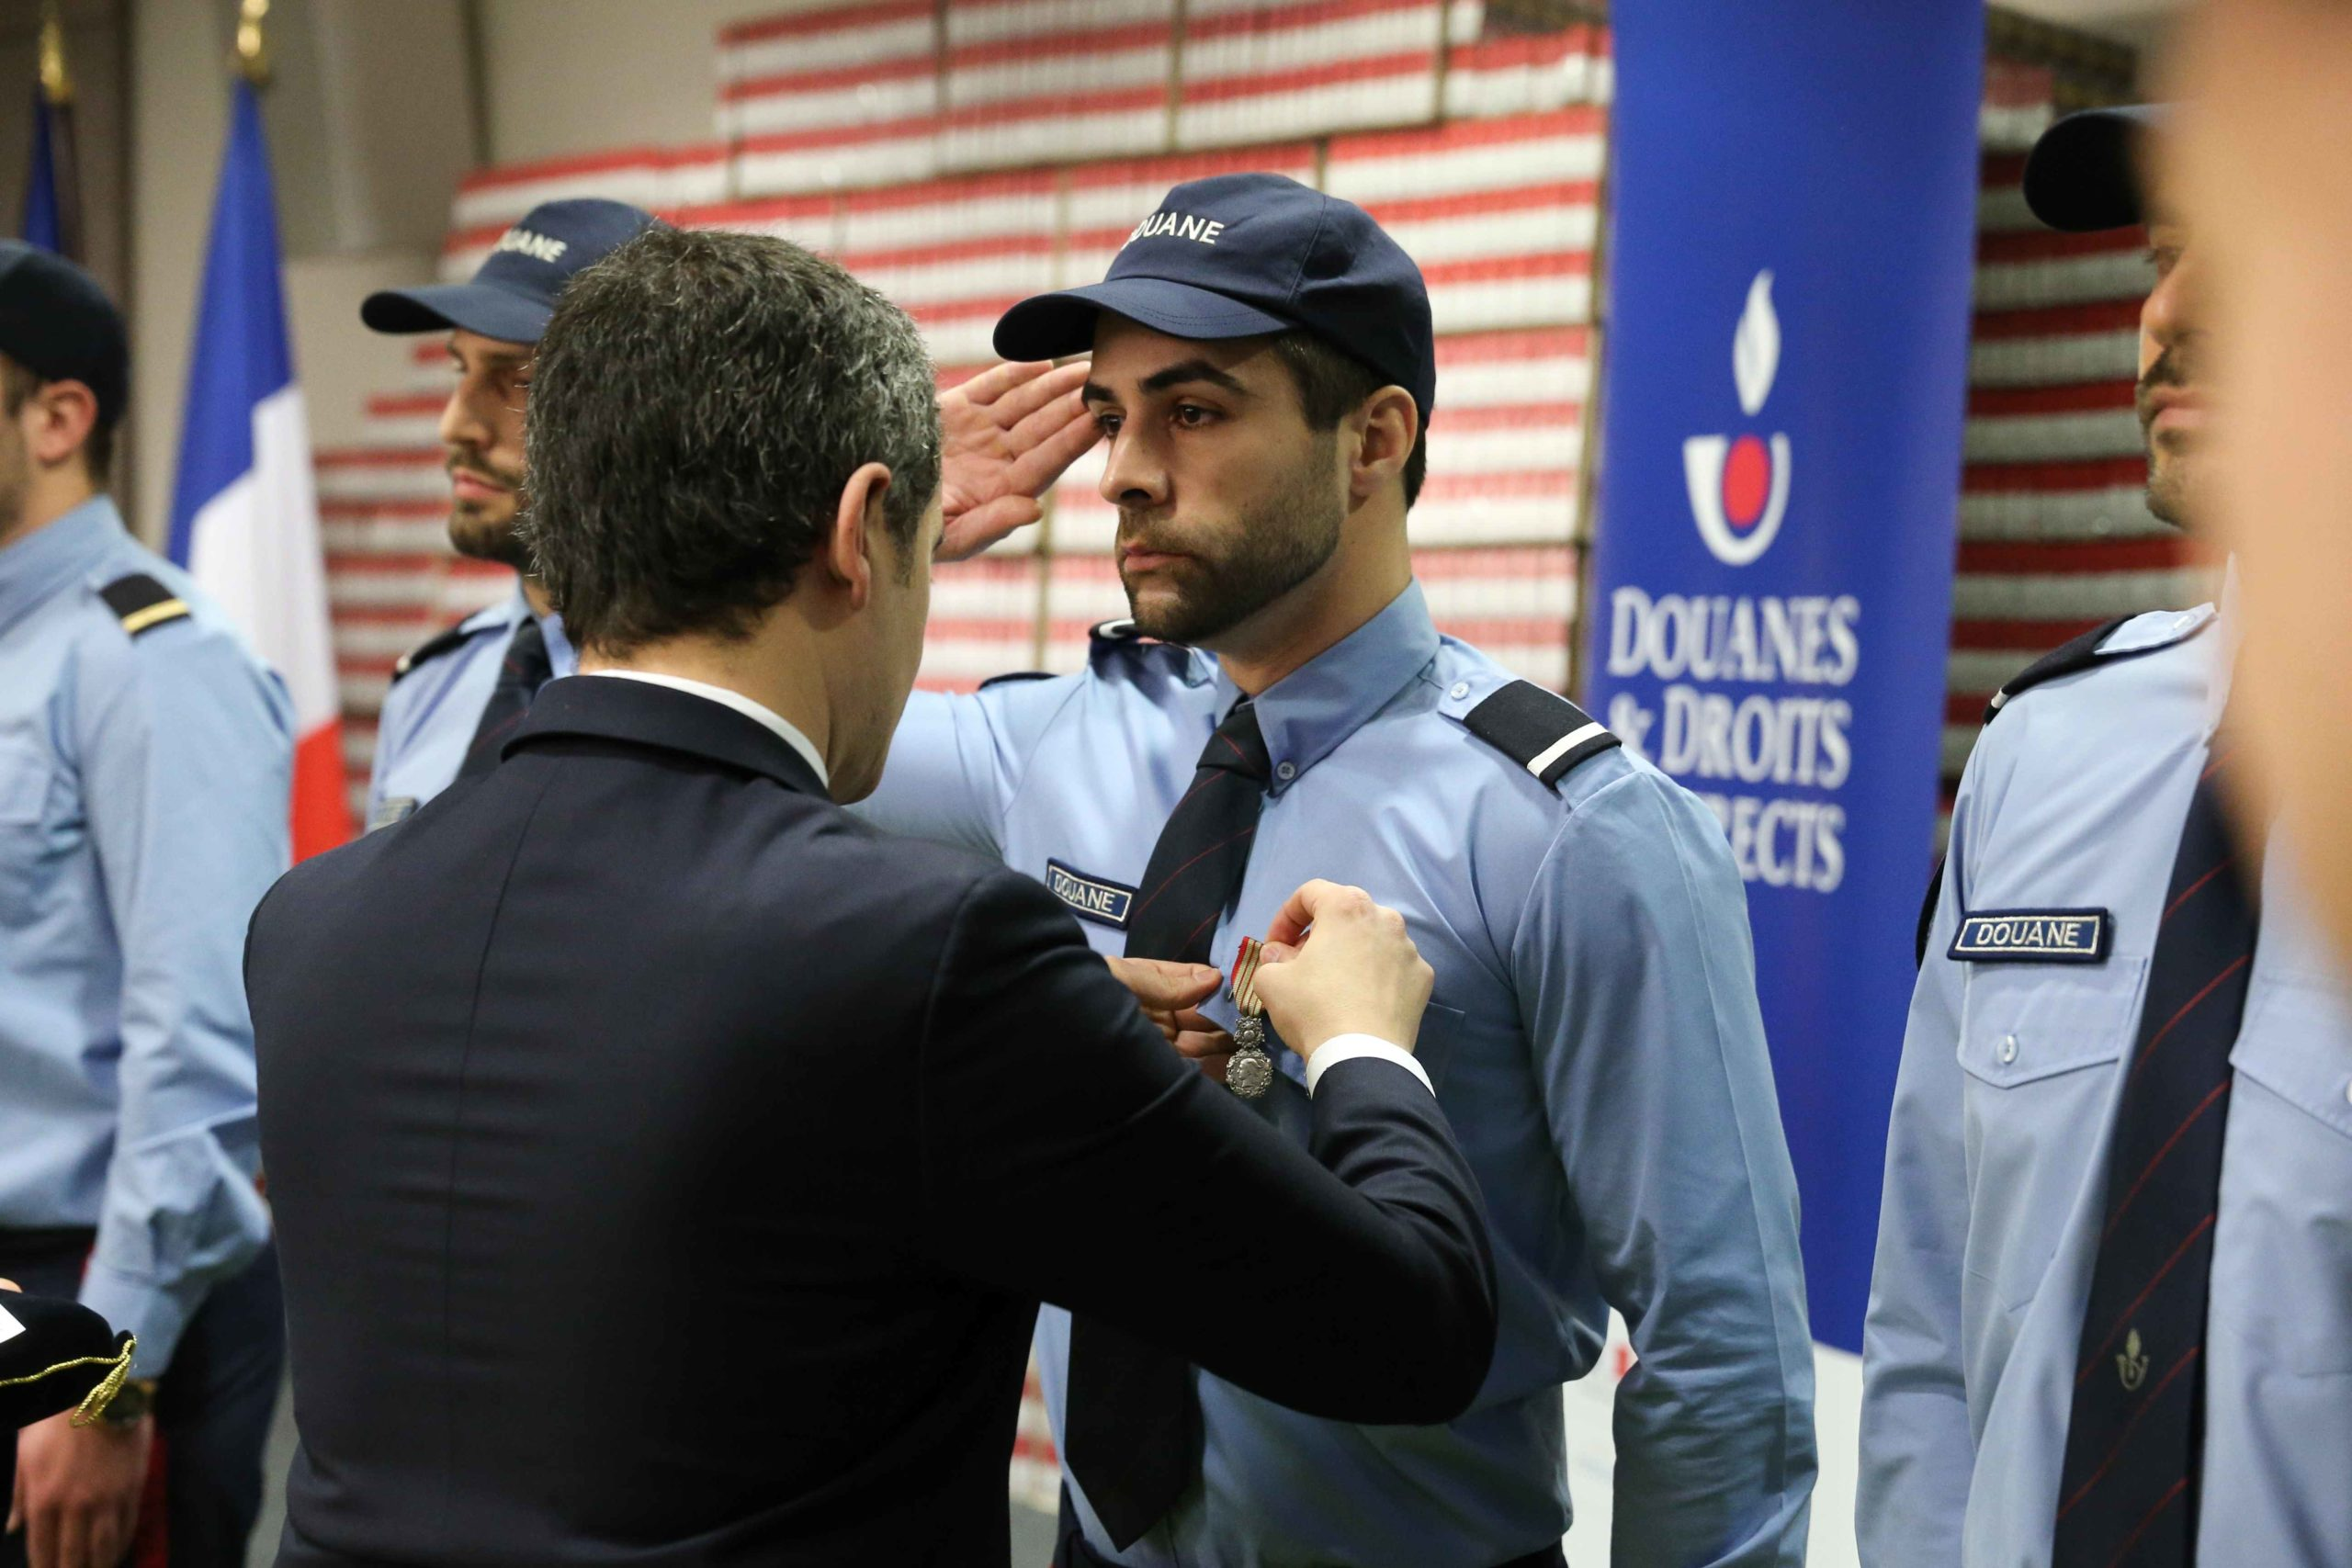 French Minister of Public Action and Accounts Gerald Darmanin (C) pins a medal to a customs officer in the Paris regional customs service on February 04, 2020, where he went to present the 2019 results of the National plan to mobilise customs against the t